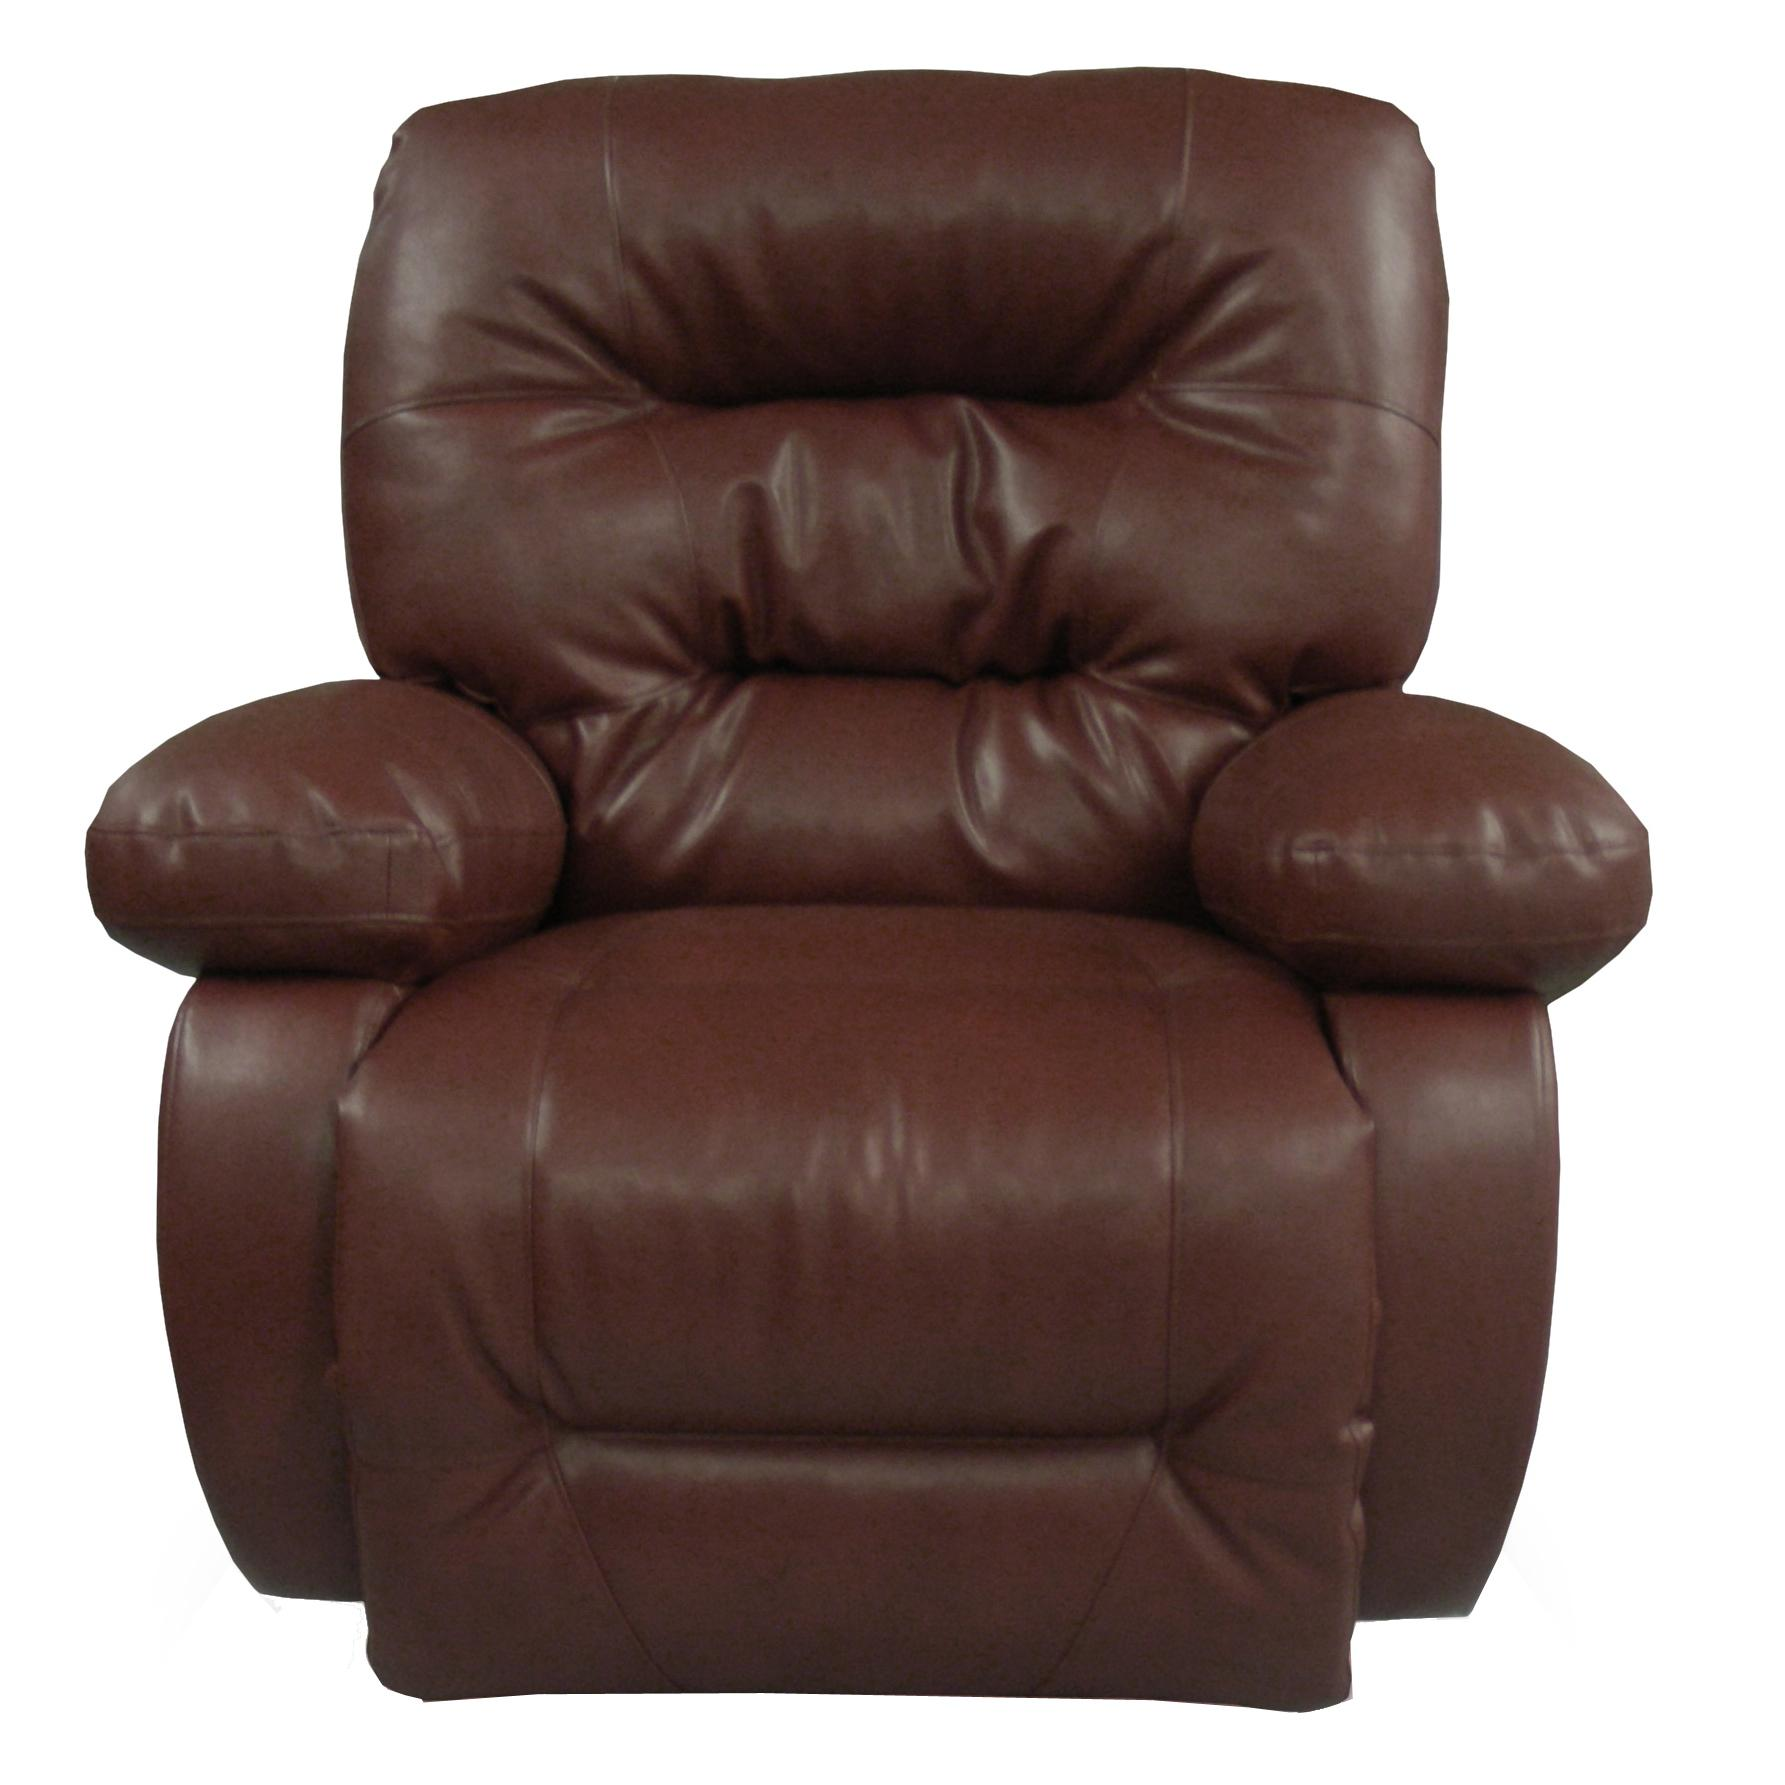 Medium Recliners Maddox Power Swivel Glider Recliner by Best Home Furnishings at Westrich Furniture & Appliances